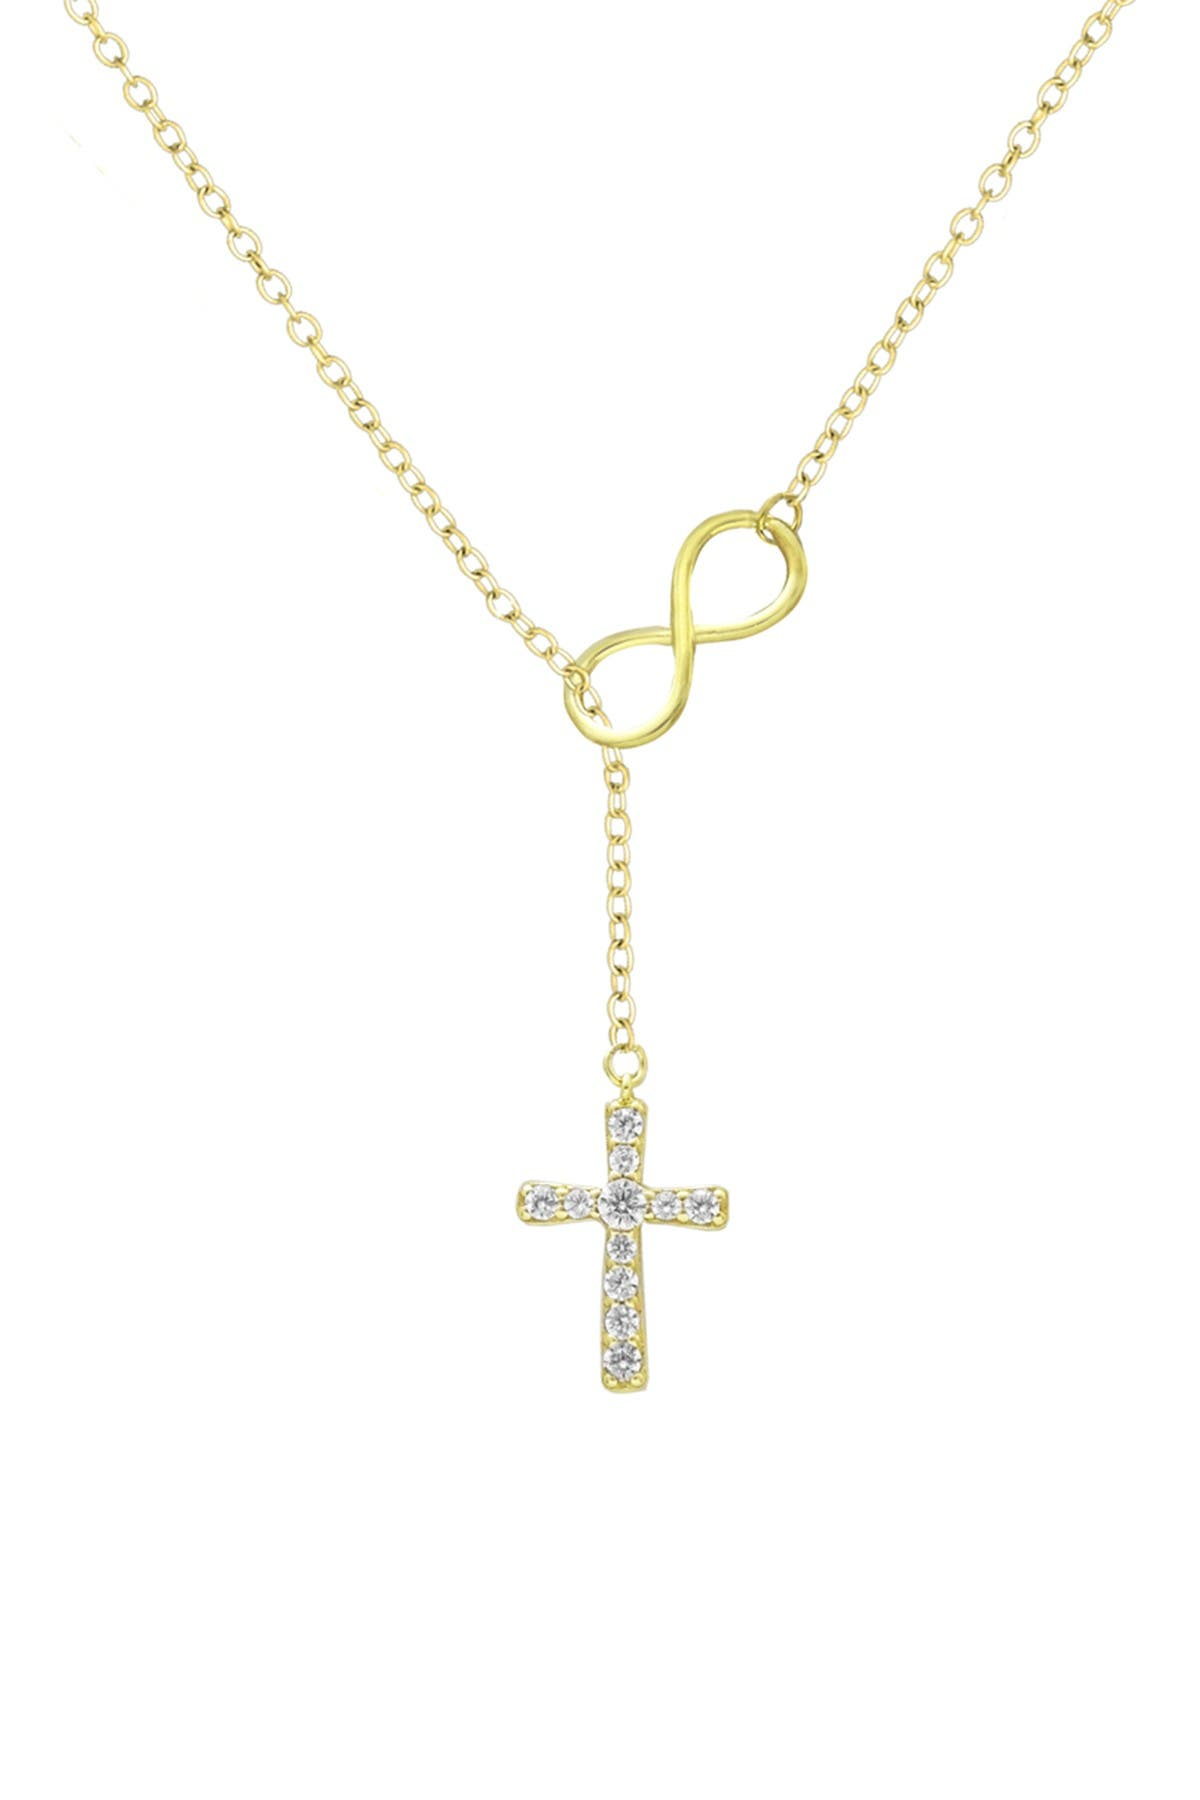 Image of Savvy Cie 18K Yellow Gold Vermeil Inifity & Pave CZ Cross Pendant Necklace